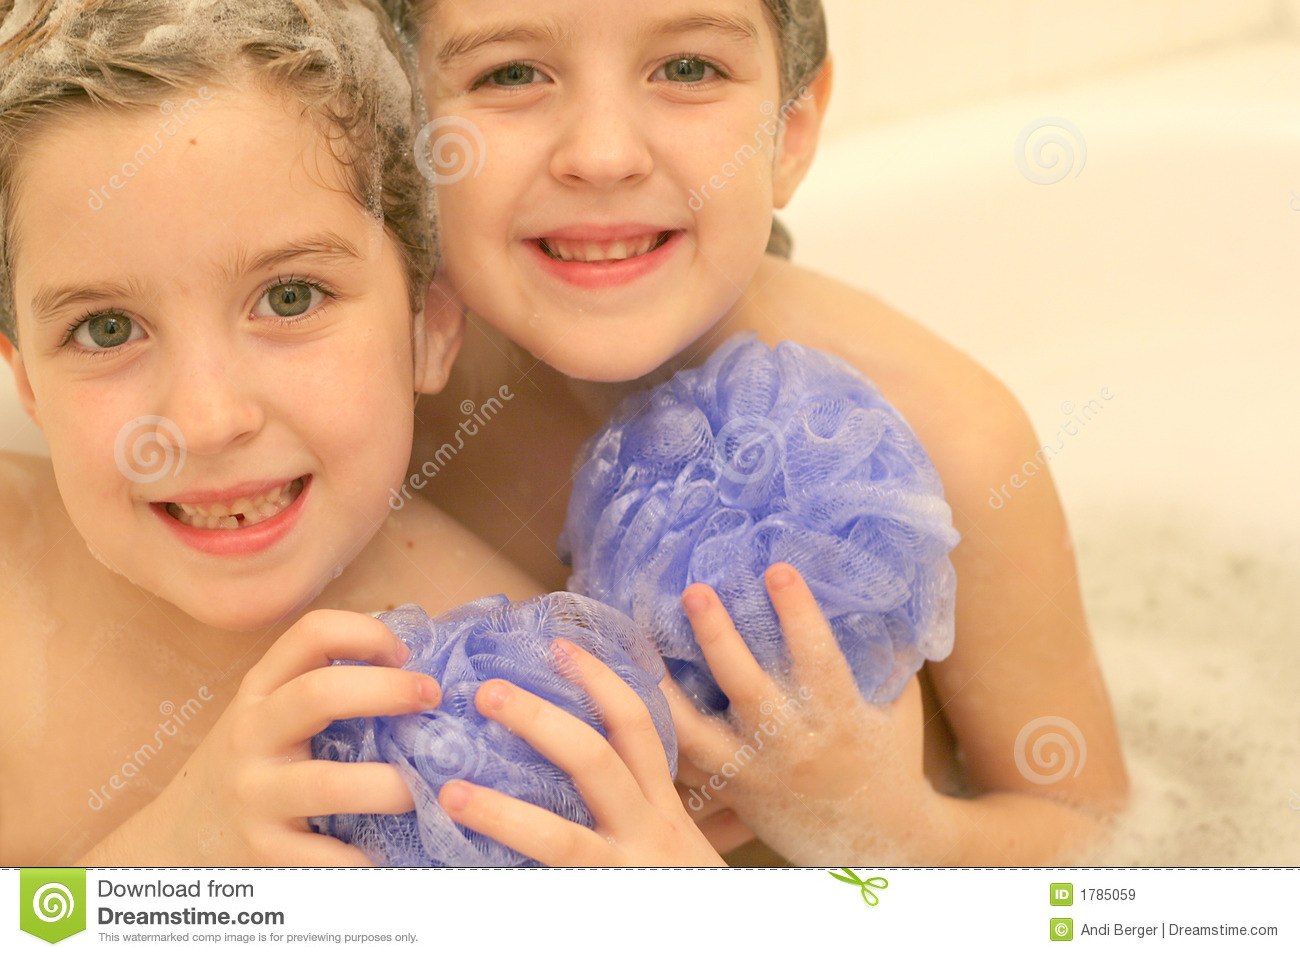 twins in the bath royalty free stock images image 1785059. Black Bedroom Furniture Sets. Home Design Ideas